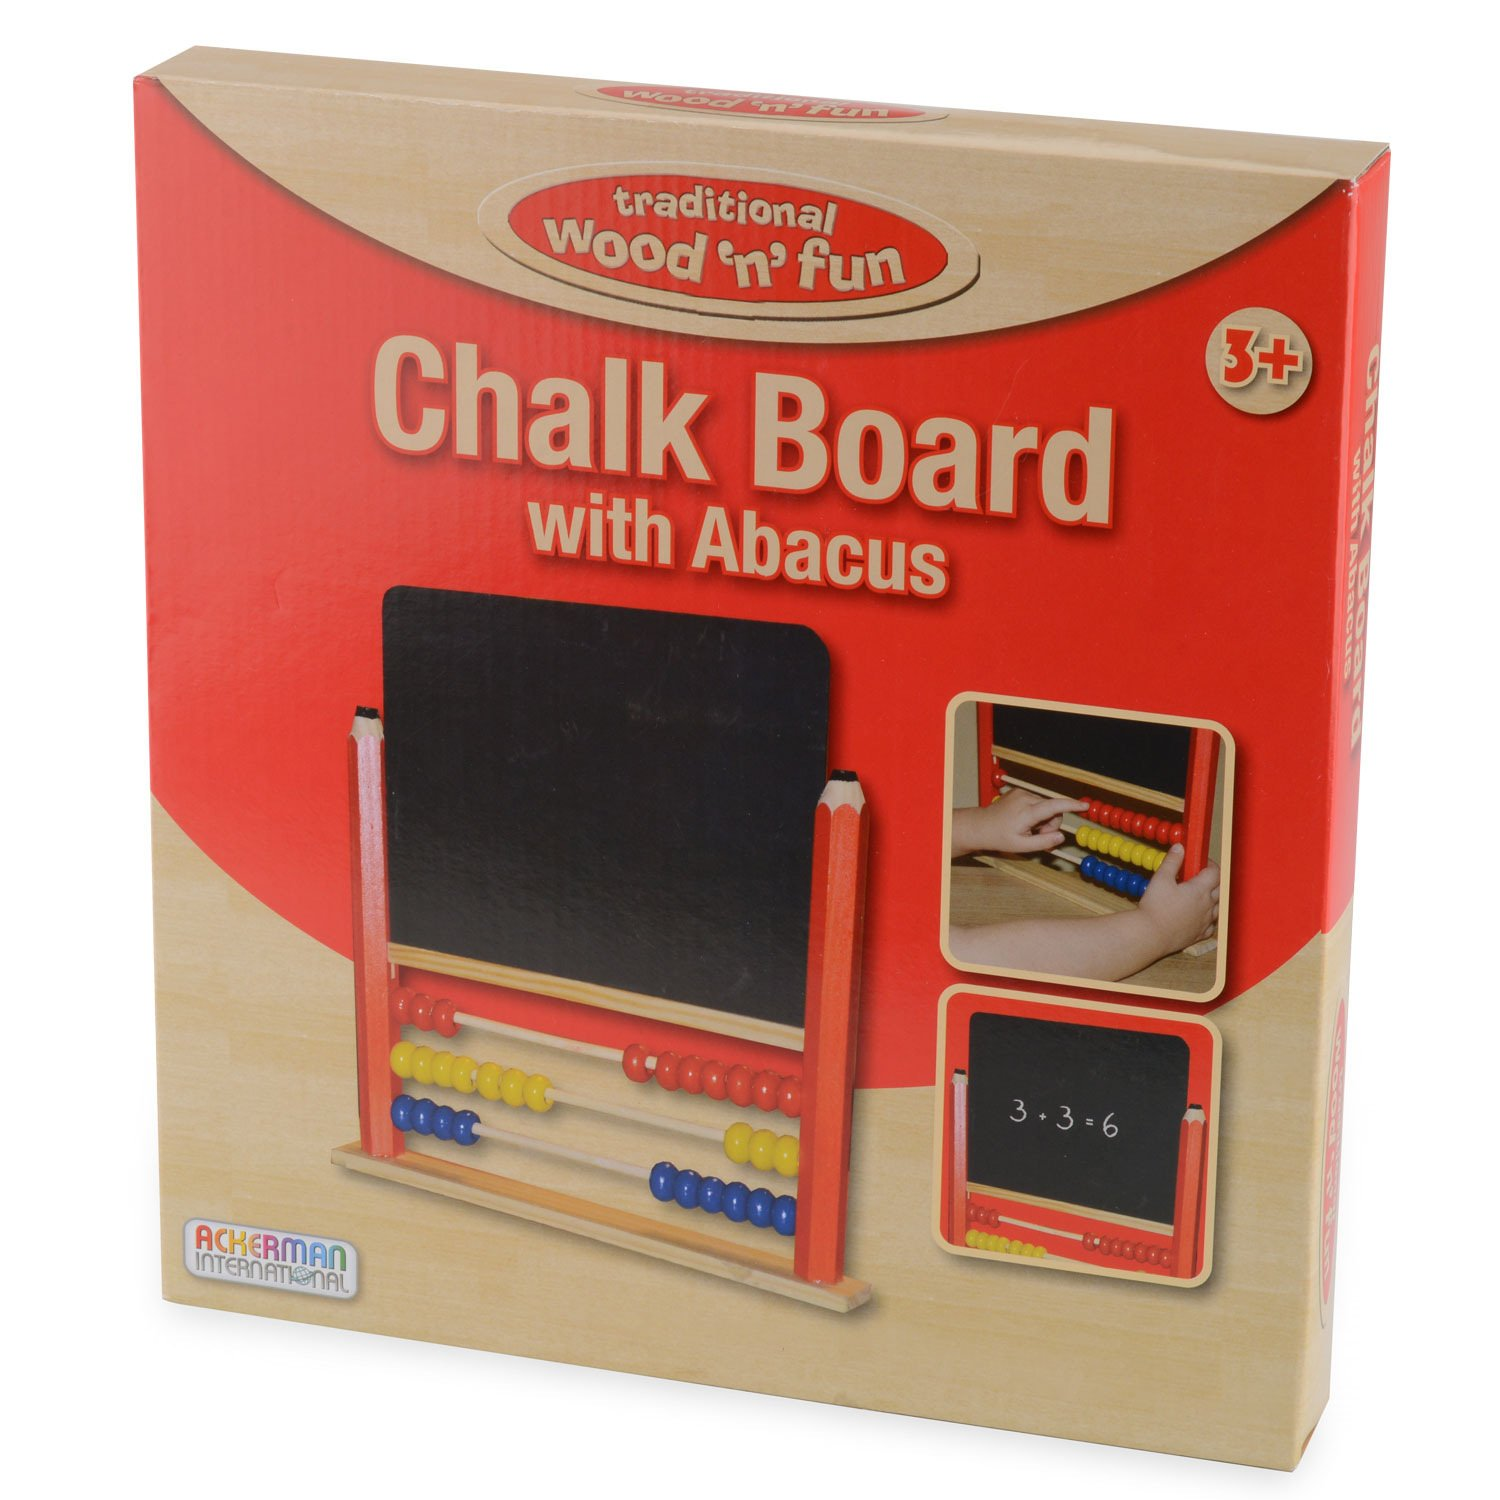 Childrens Wooden Abacus Kids Chalk Board Chalkboard Counting Drawing Toy Ackerman International